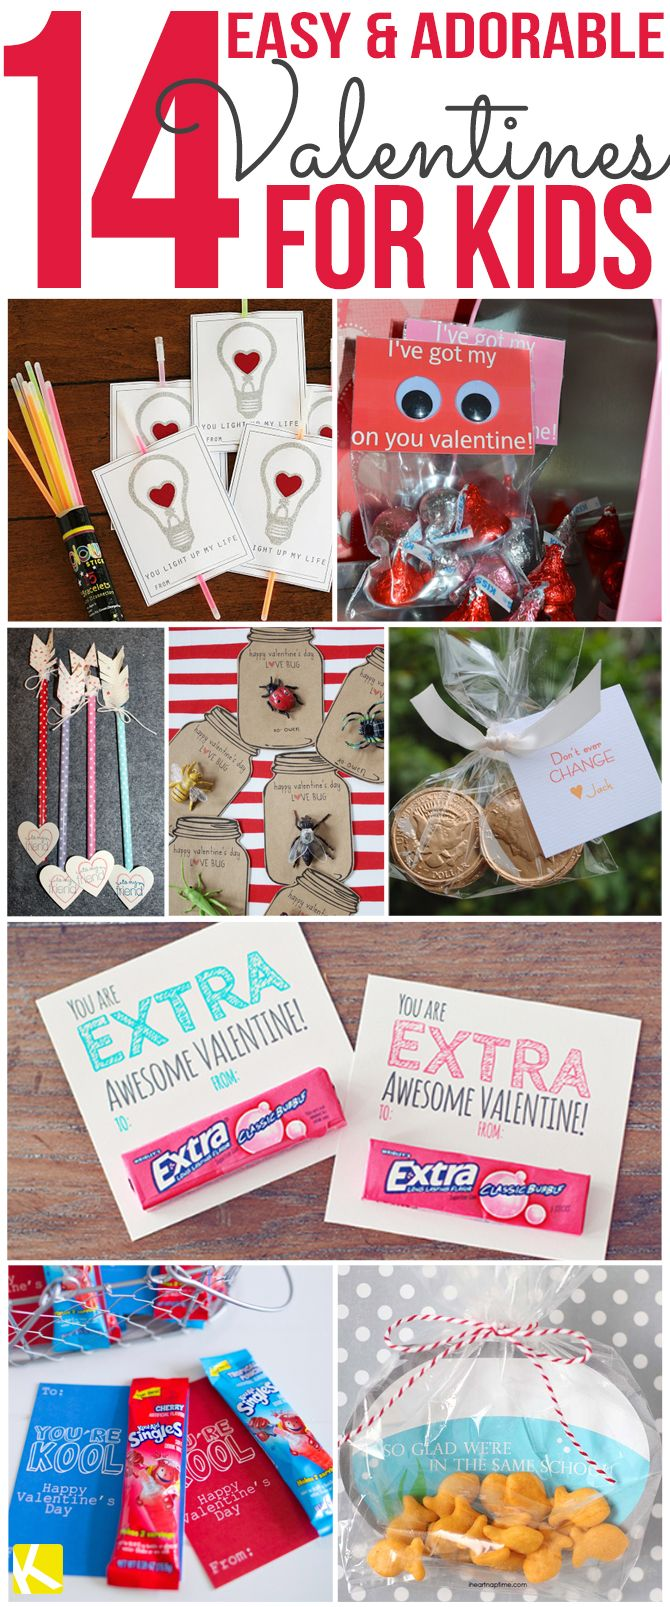 14 Easy And Adorable Valentines For Kids Valentine S Day